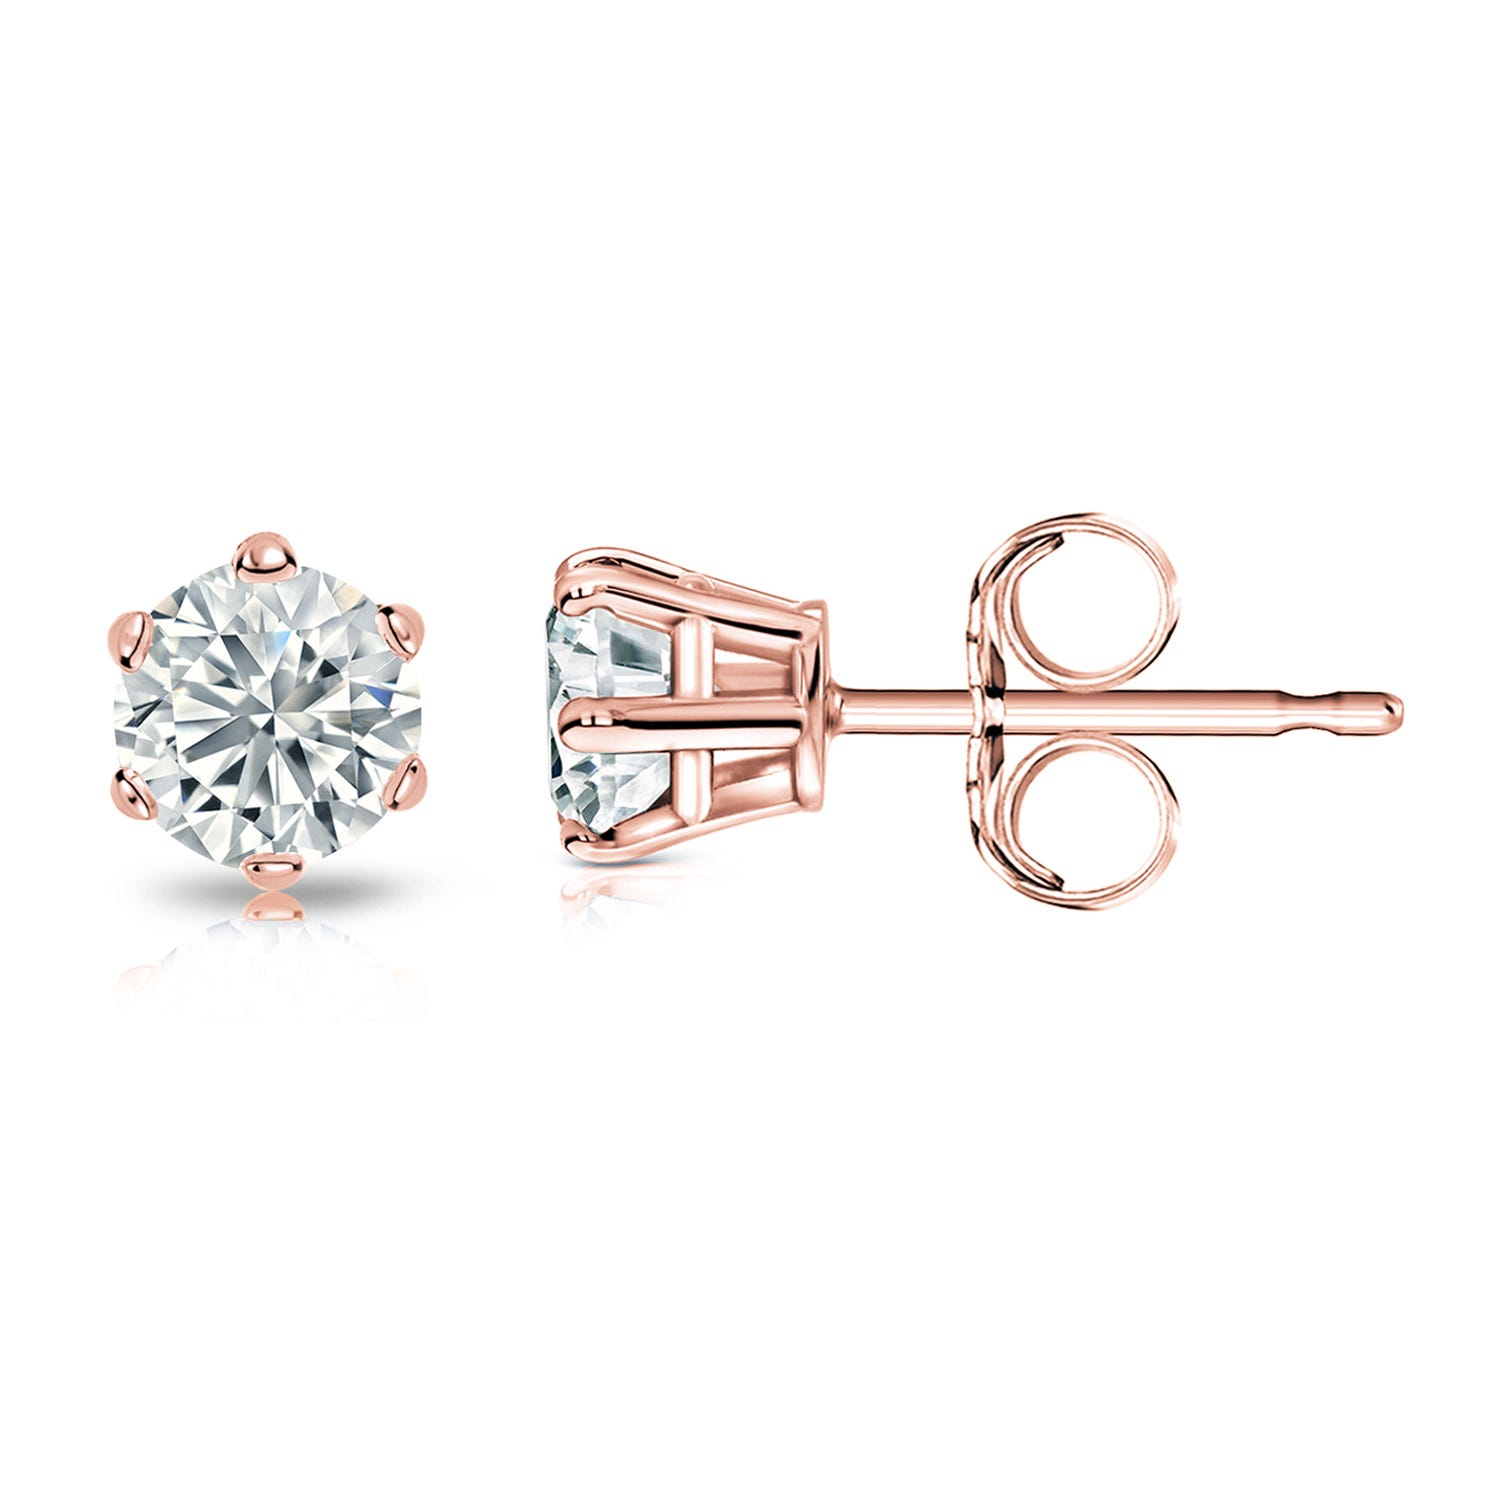 Round Diamond 5/8ctw. (IJ-I1) Solitaire Stud 6-Prong Earrings in 14K Rose Gold